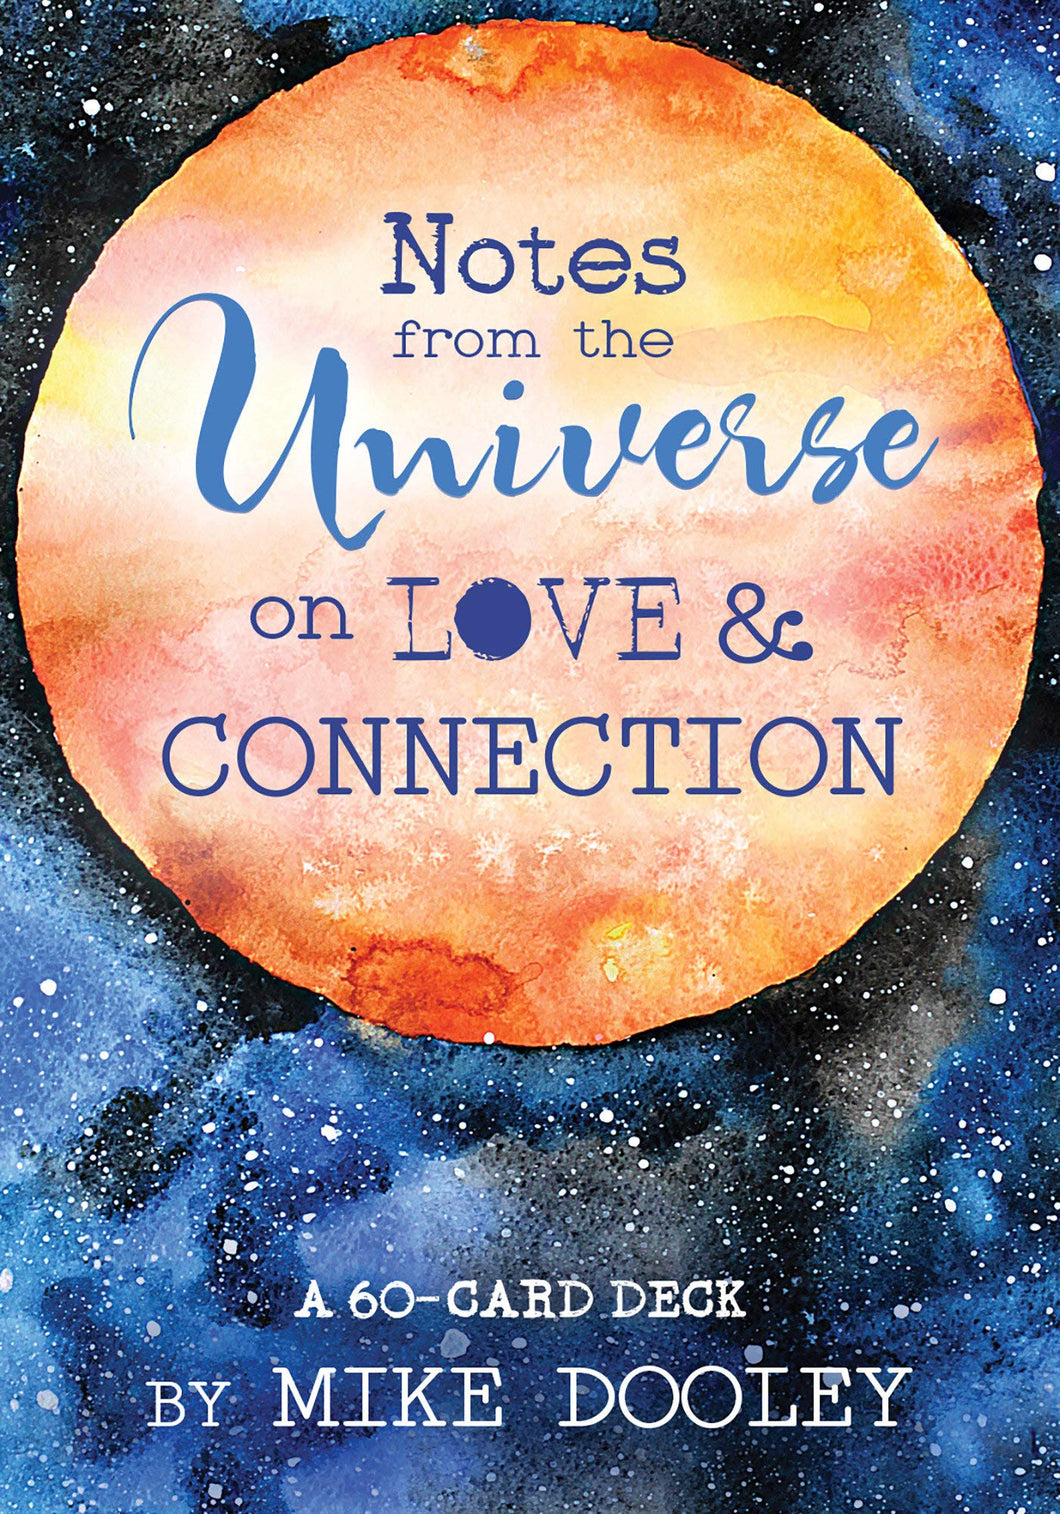 Notes from the Universe on Love & Connection: A 60-Card Deck Cards